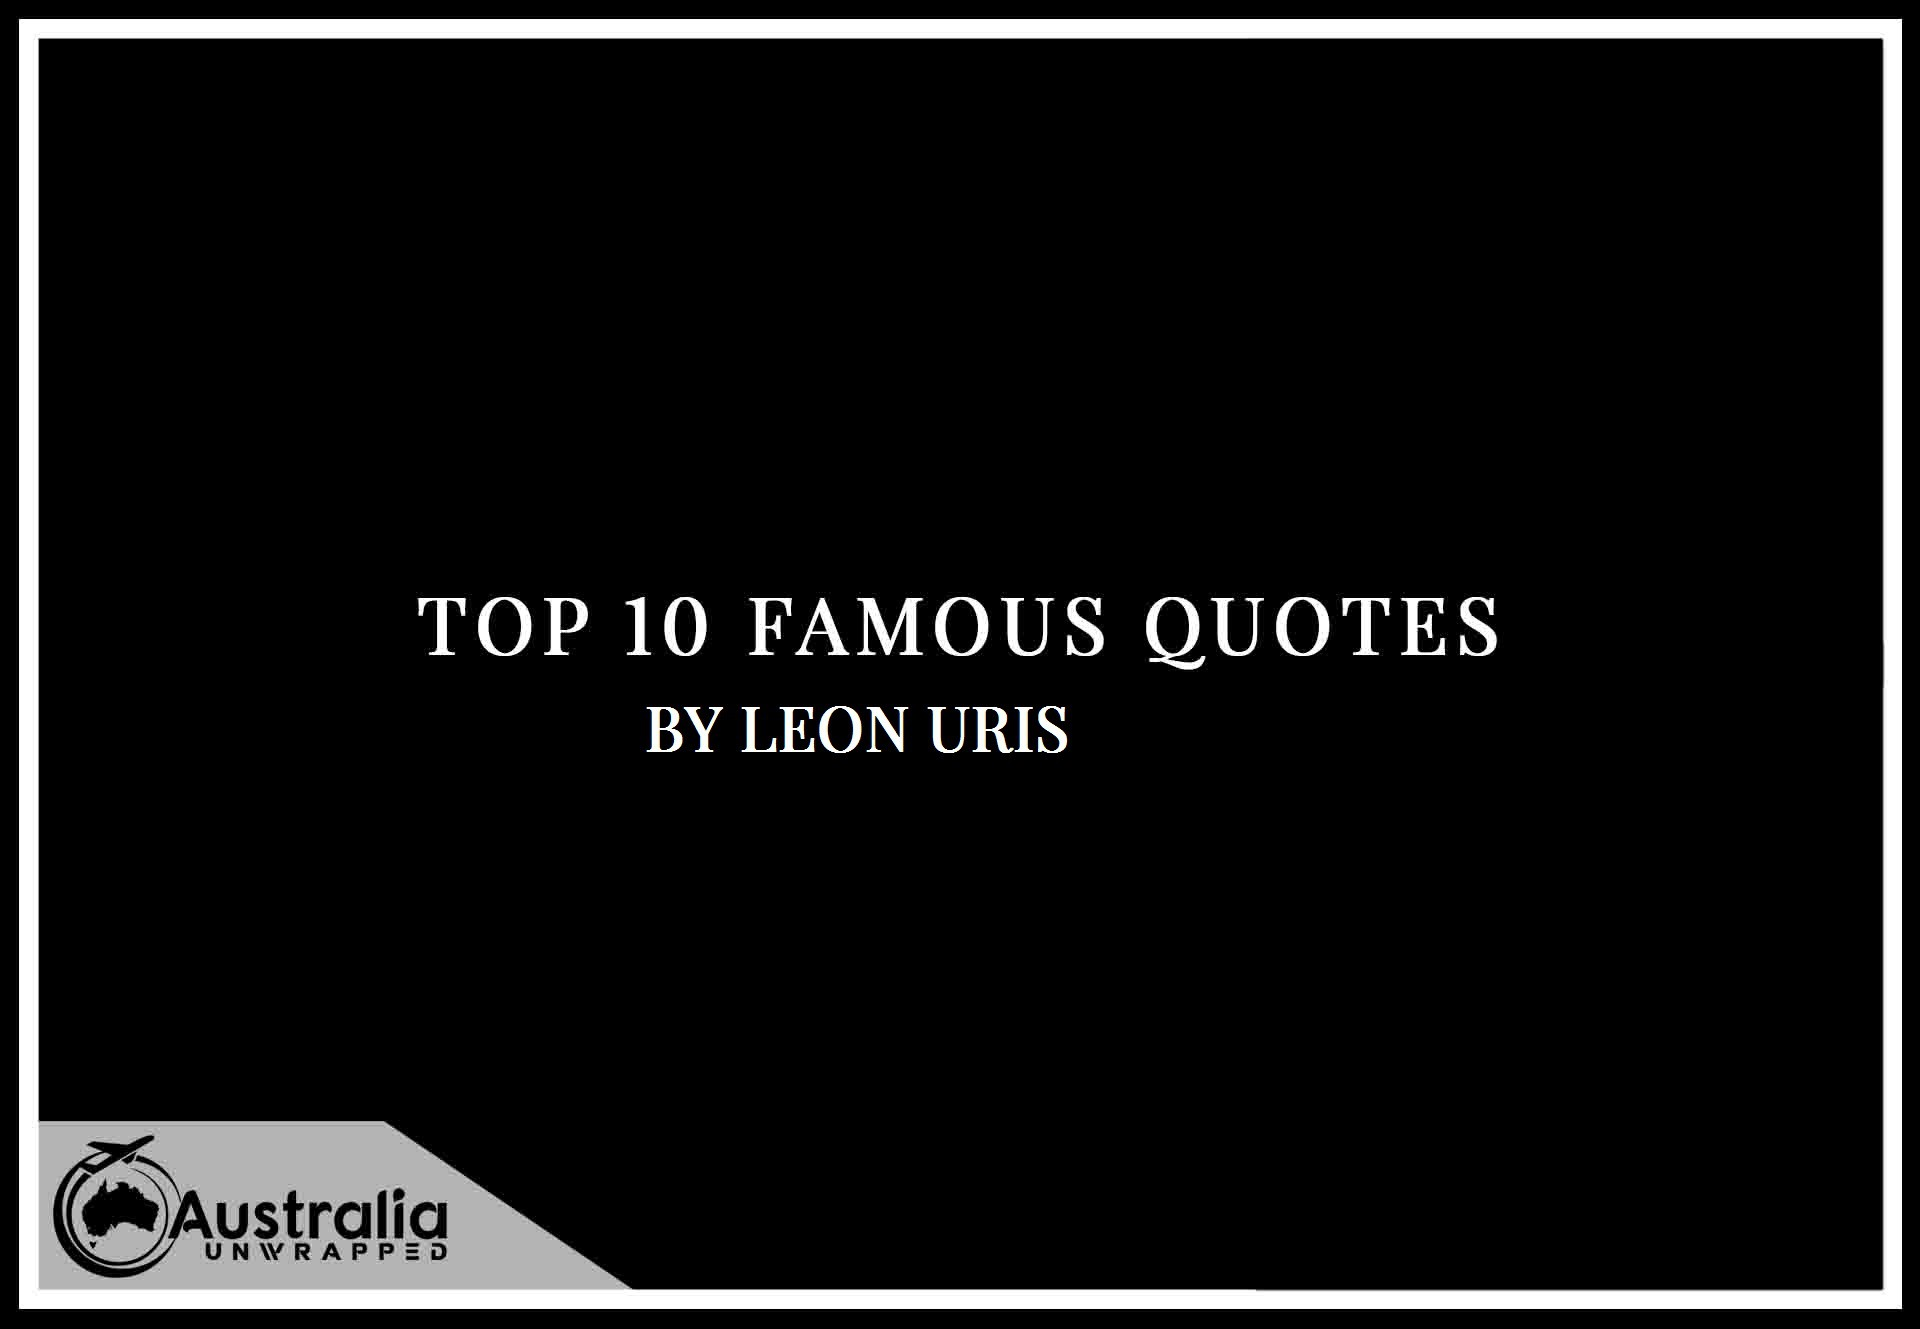 Leon Uris's Top 10 Popular and Famous Quotes